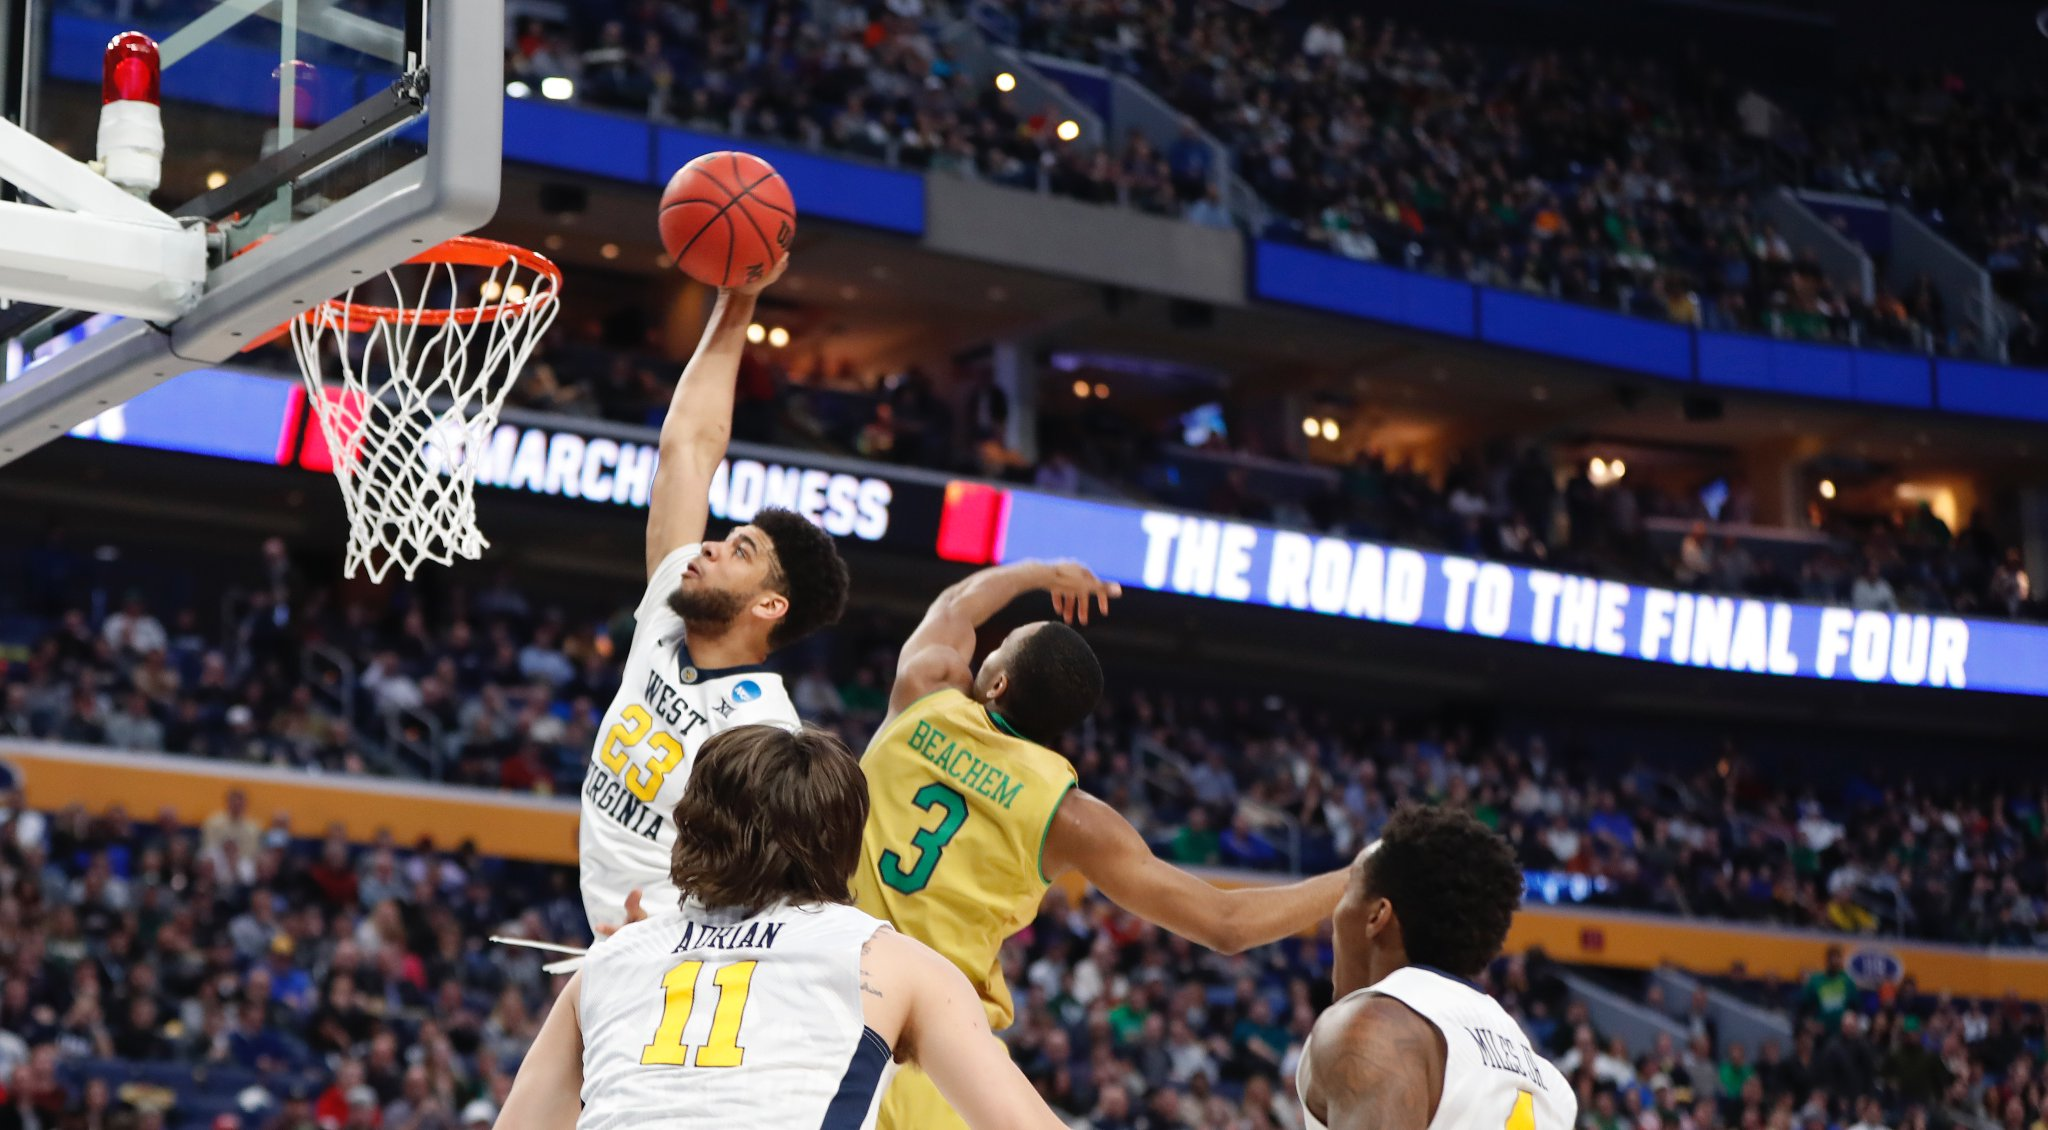 West Virginia's Esa Ahmad flies high for a dunk in win over  Notre Dame. (Harry Scull/Buffalo News)